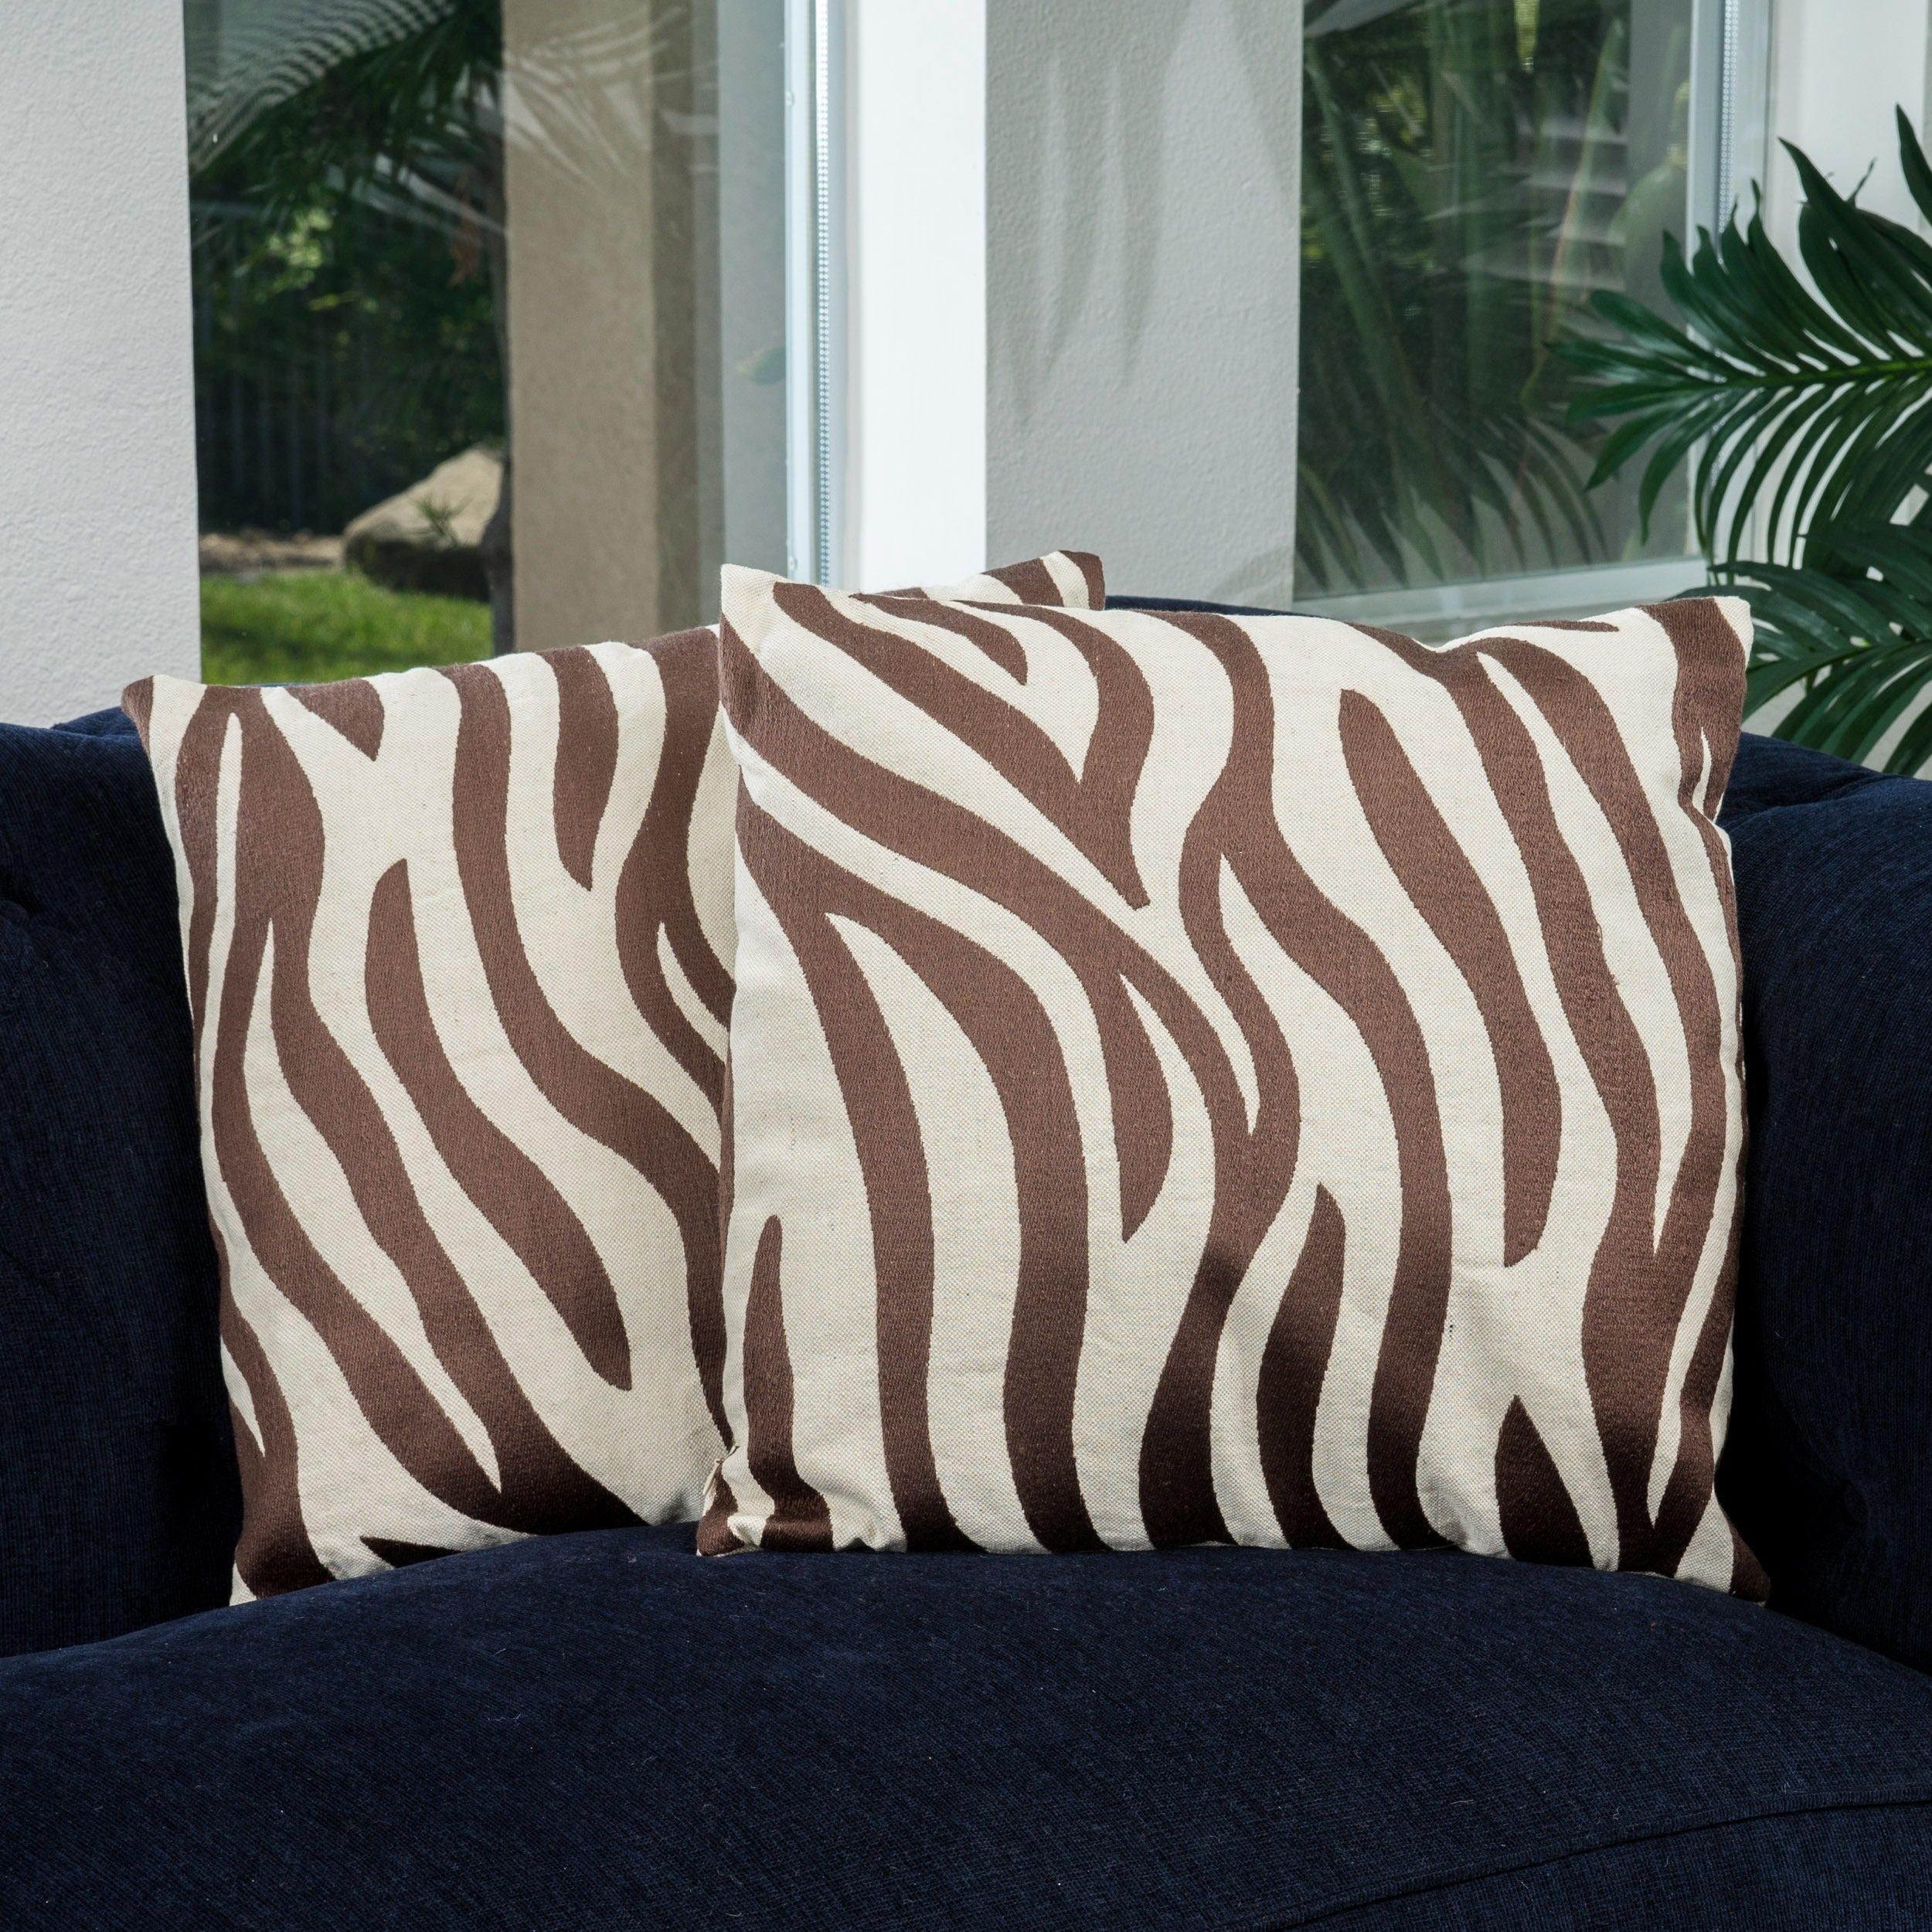 18 Inch Tan Zebra Pillows Set Of 2 By Christopher Knight Home Free Shipping Today 7912657